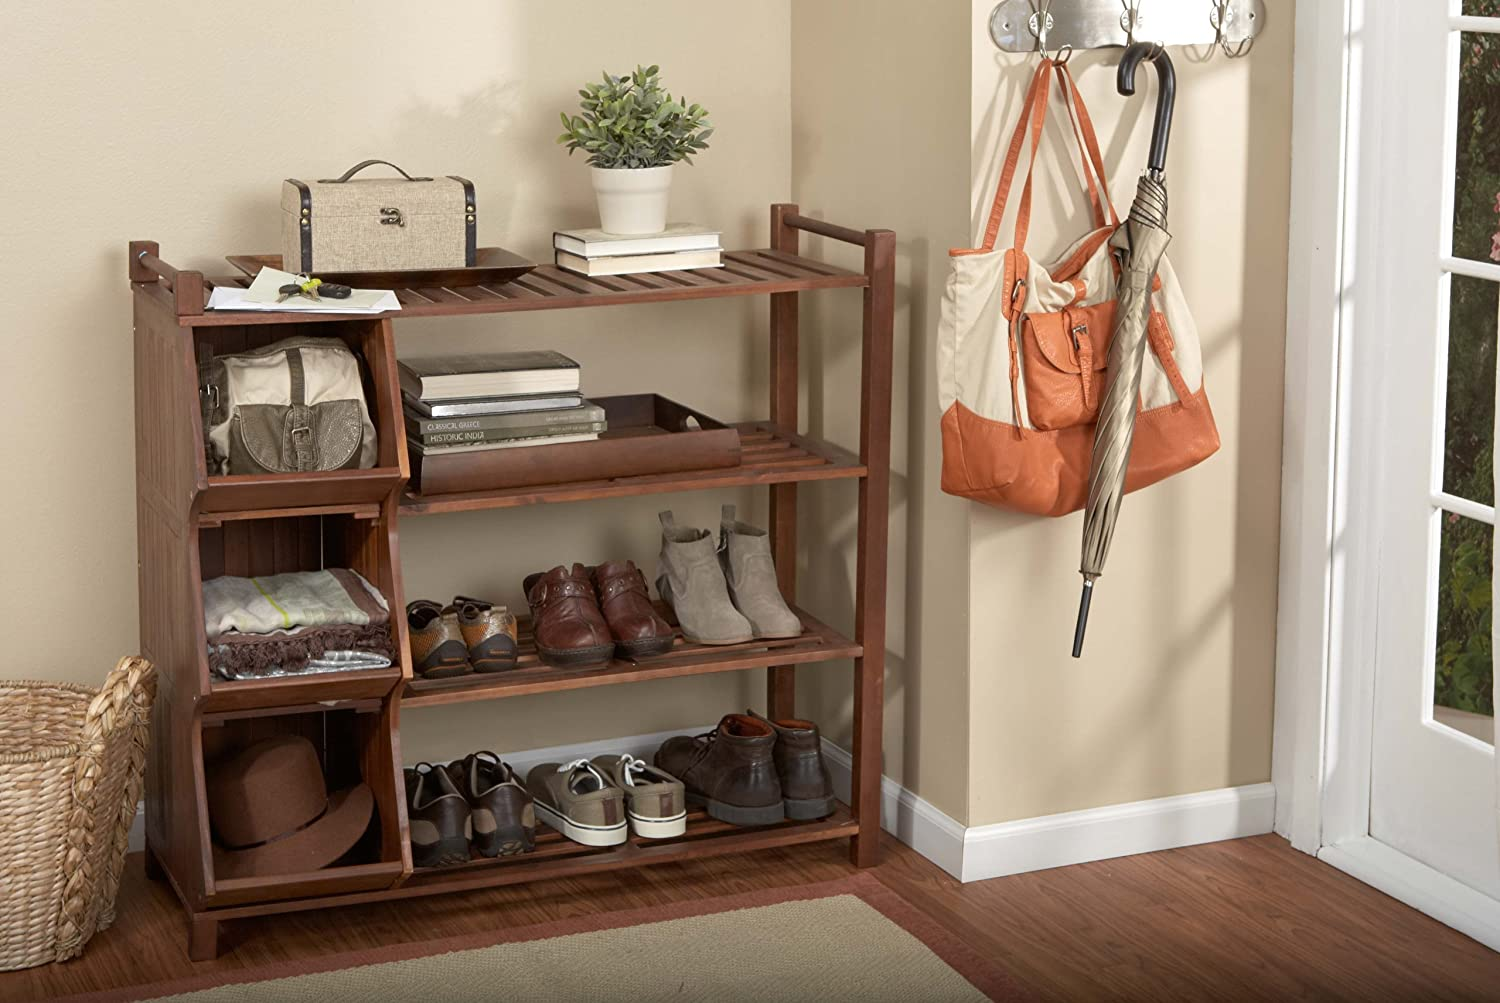 Com Merry Products Slf0020170000 4 Tier Outdoor Shoe Rack And Cubby Garden